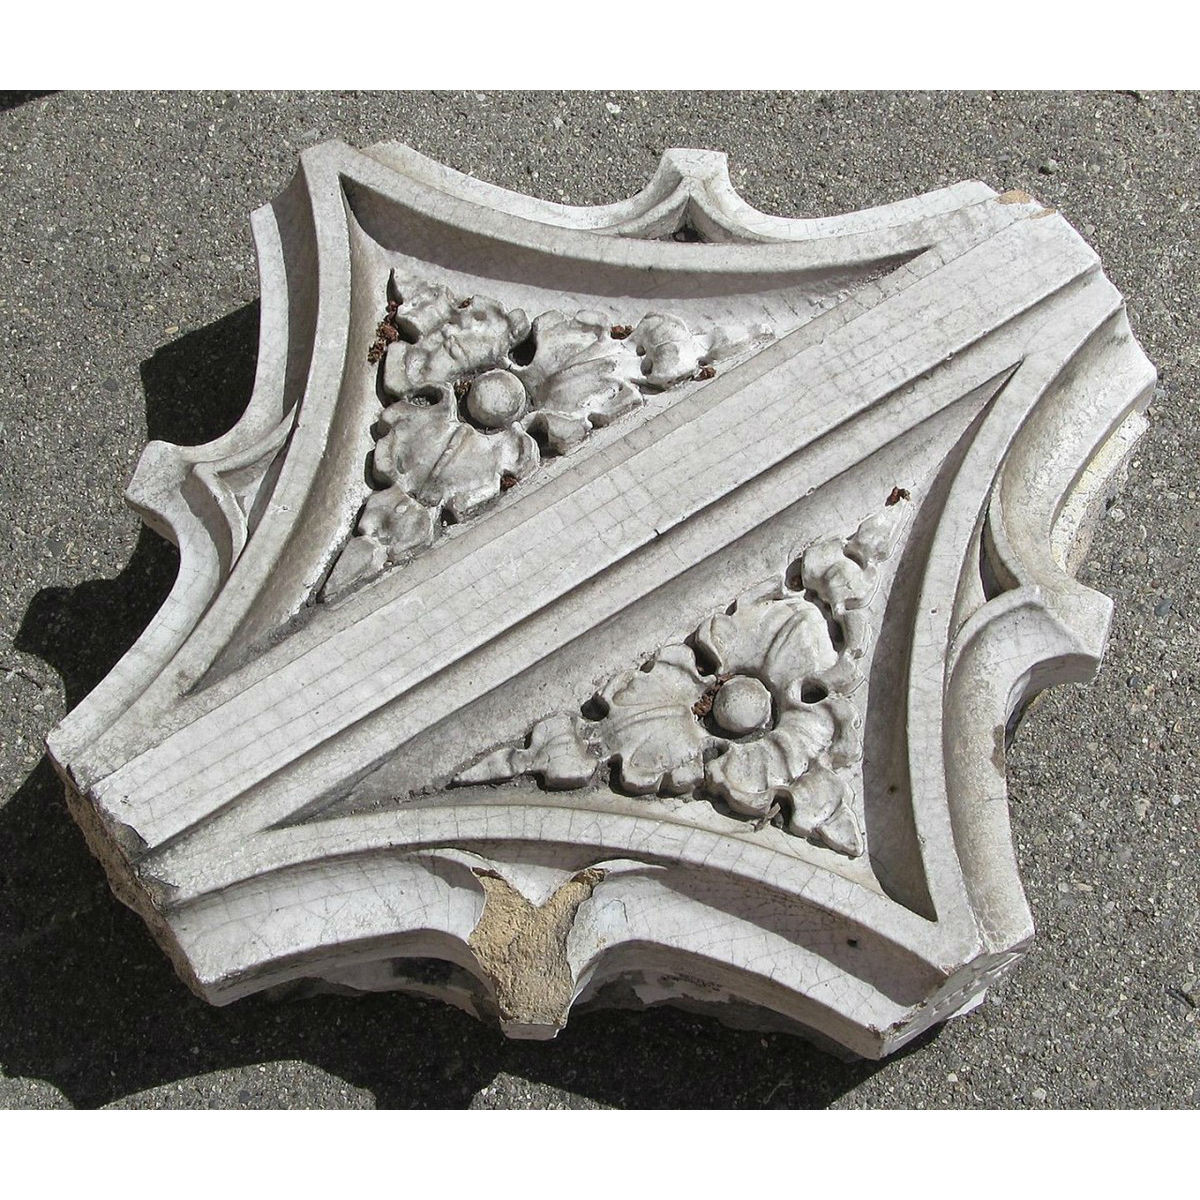 S13037 - Antique Architectural Fragment